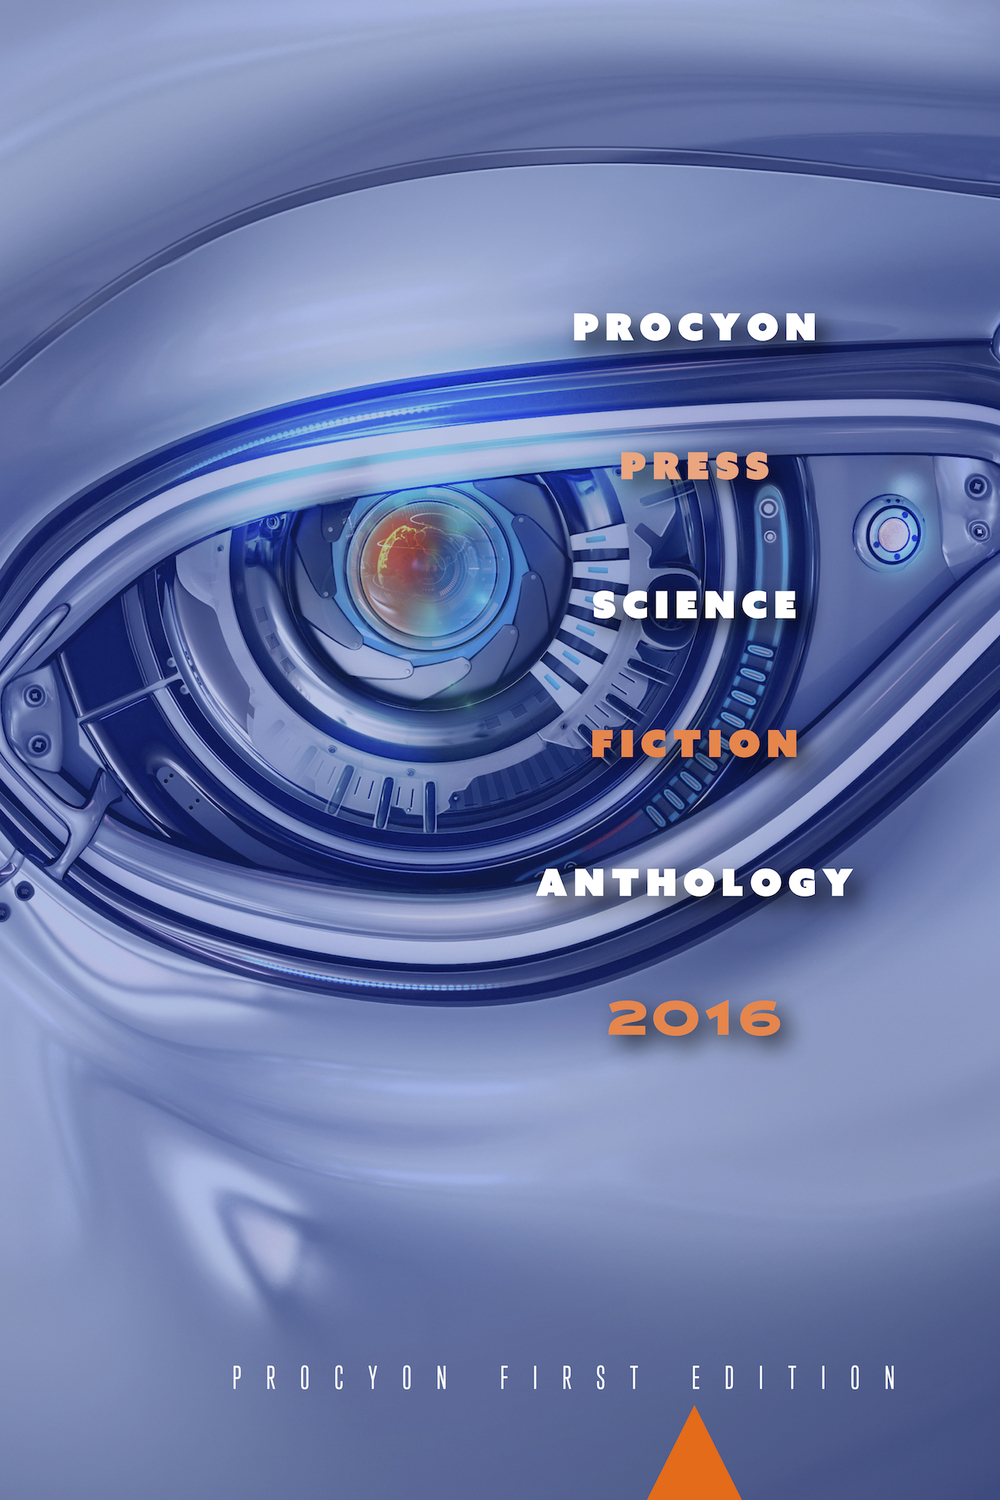 54 - Procyon Press Sci-Fi Anthology.jpg